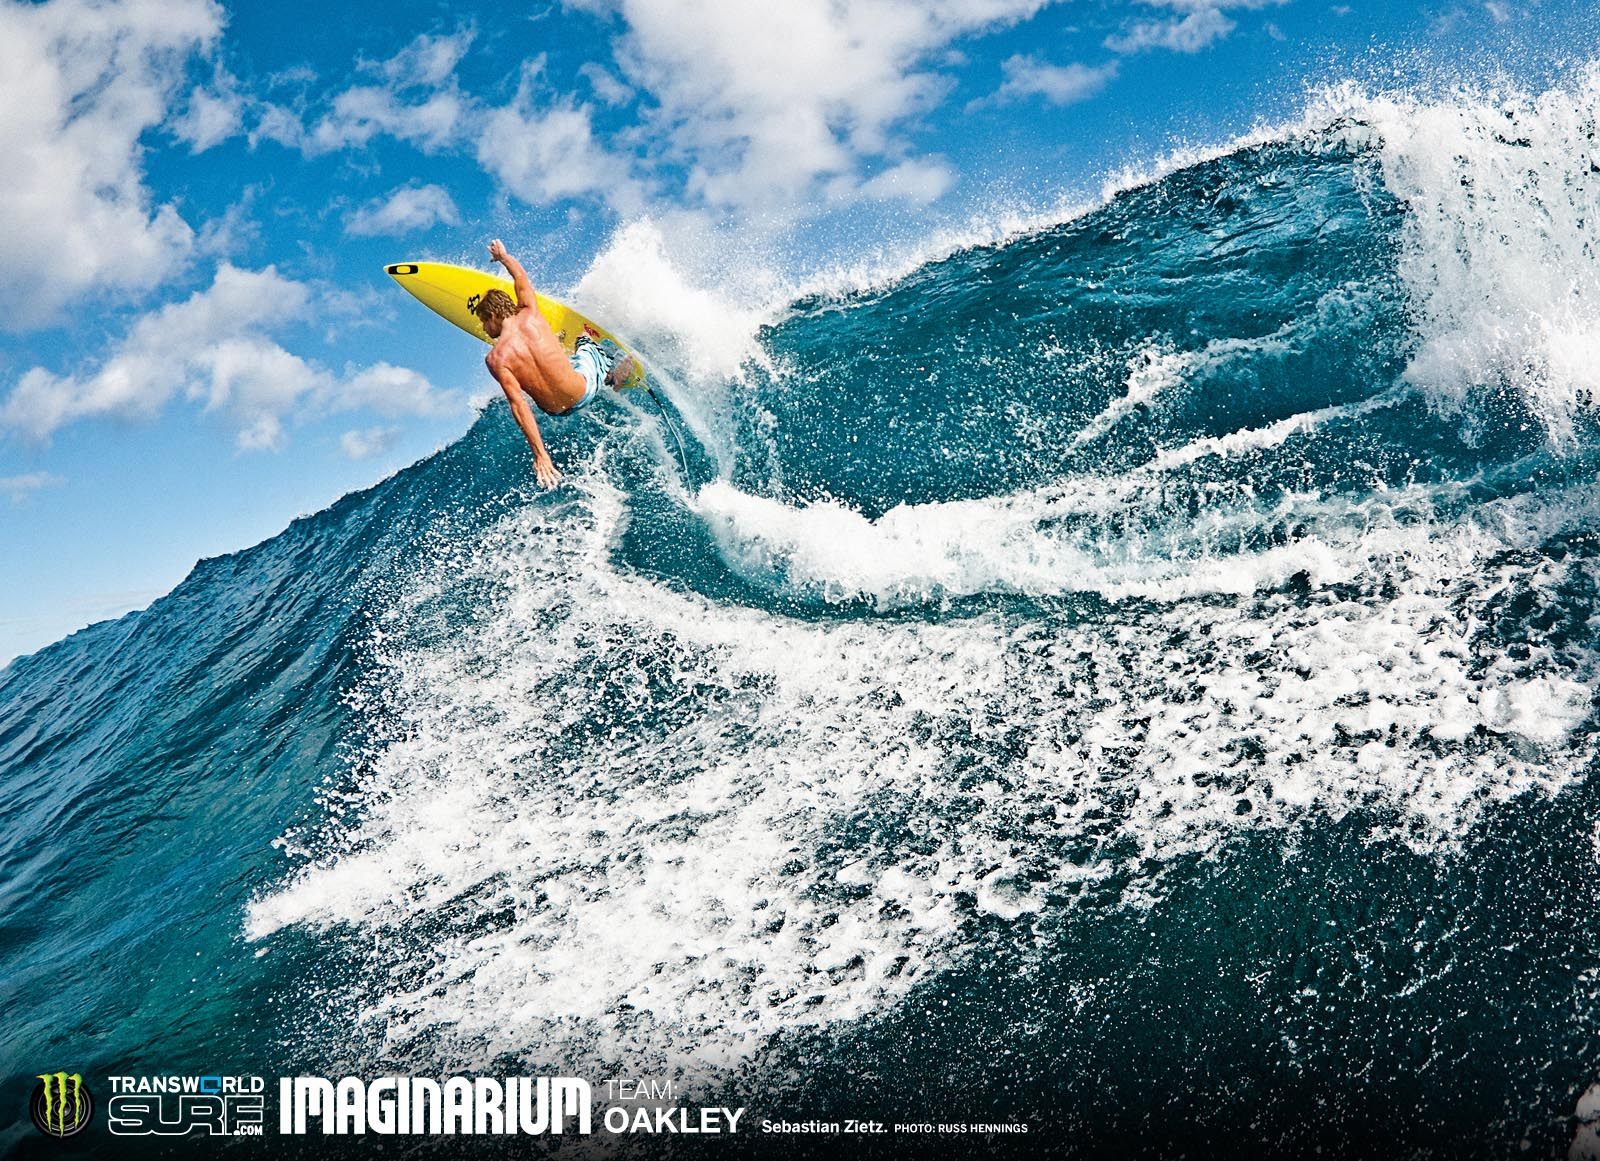 CJ Hobgood in Bali from Globes winning Imaginarium submission Click 1600x1161